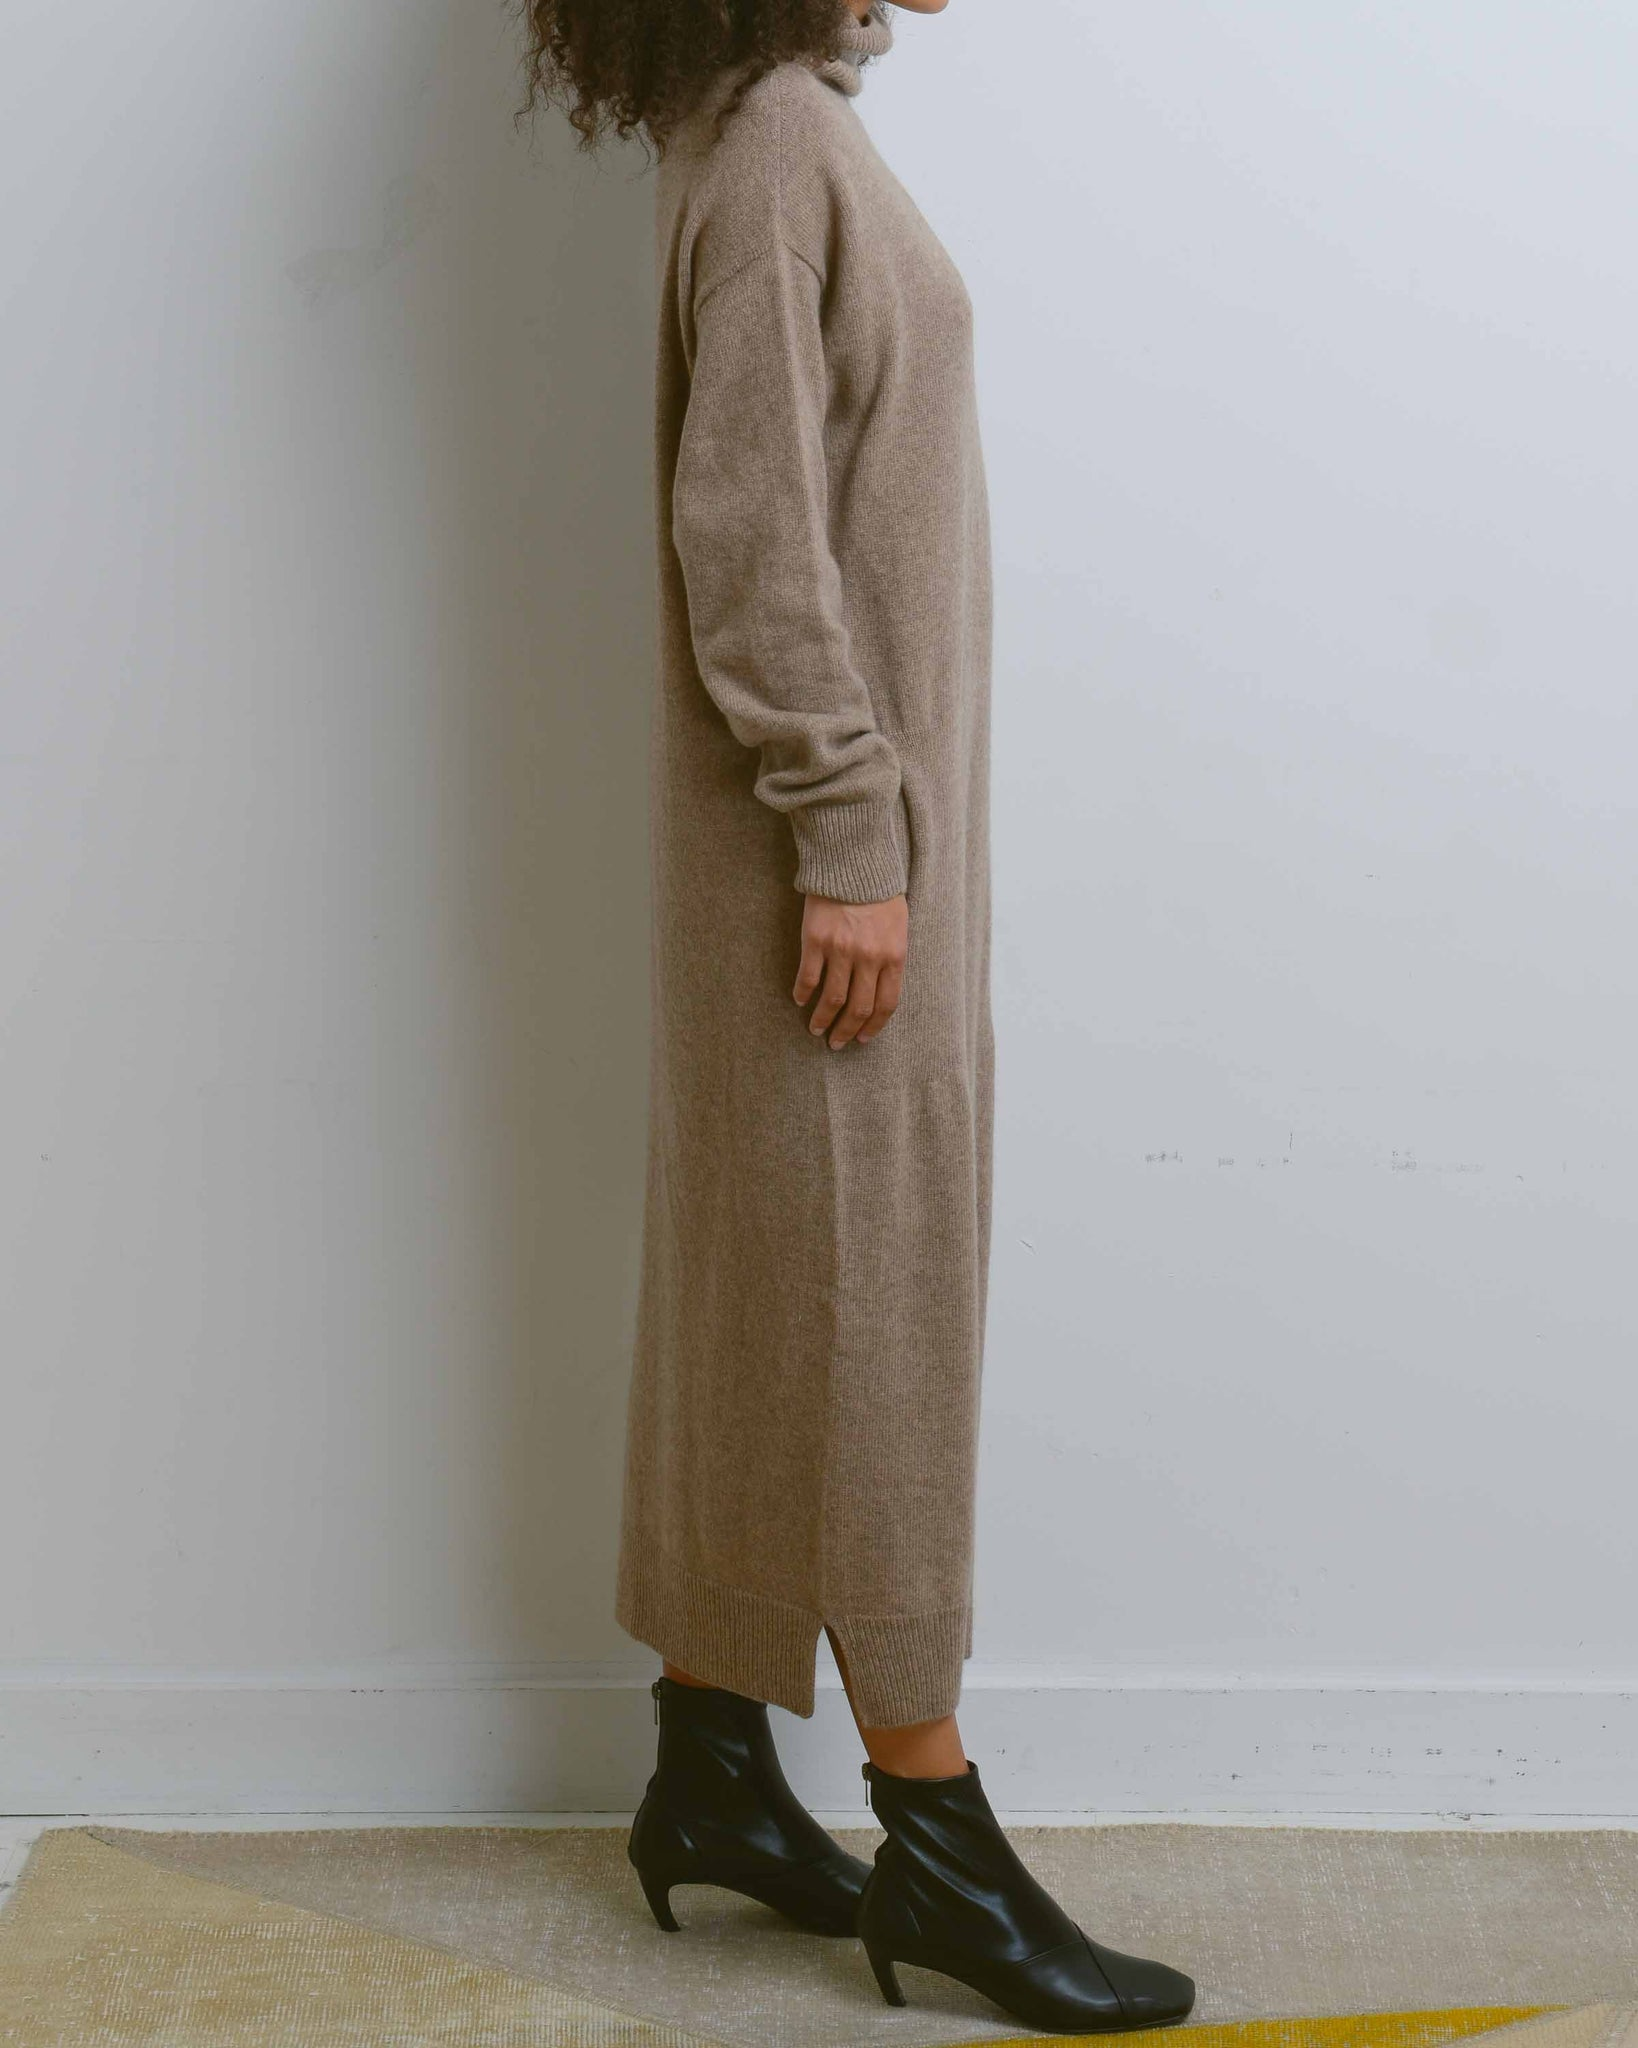 Dark Beige Wholegarment Turtle Neck Knit Dress